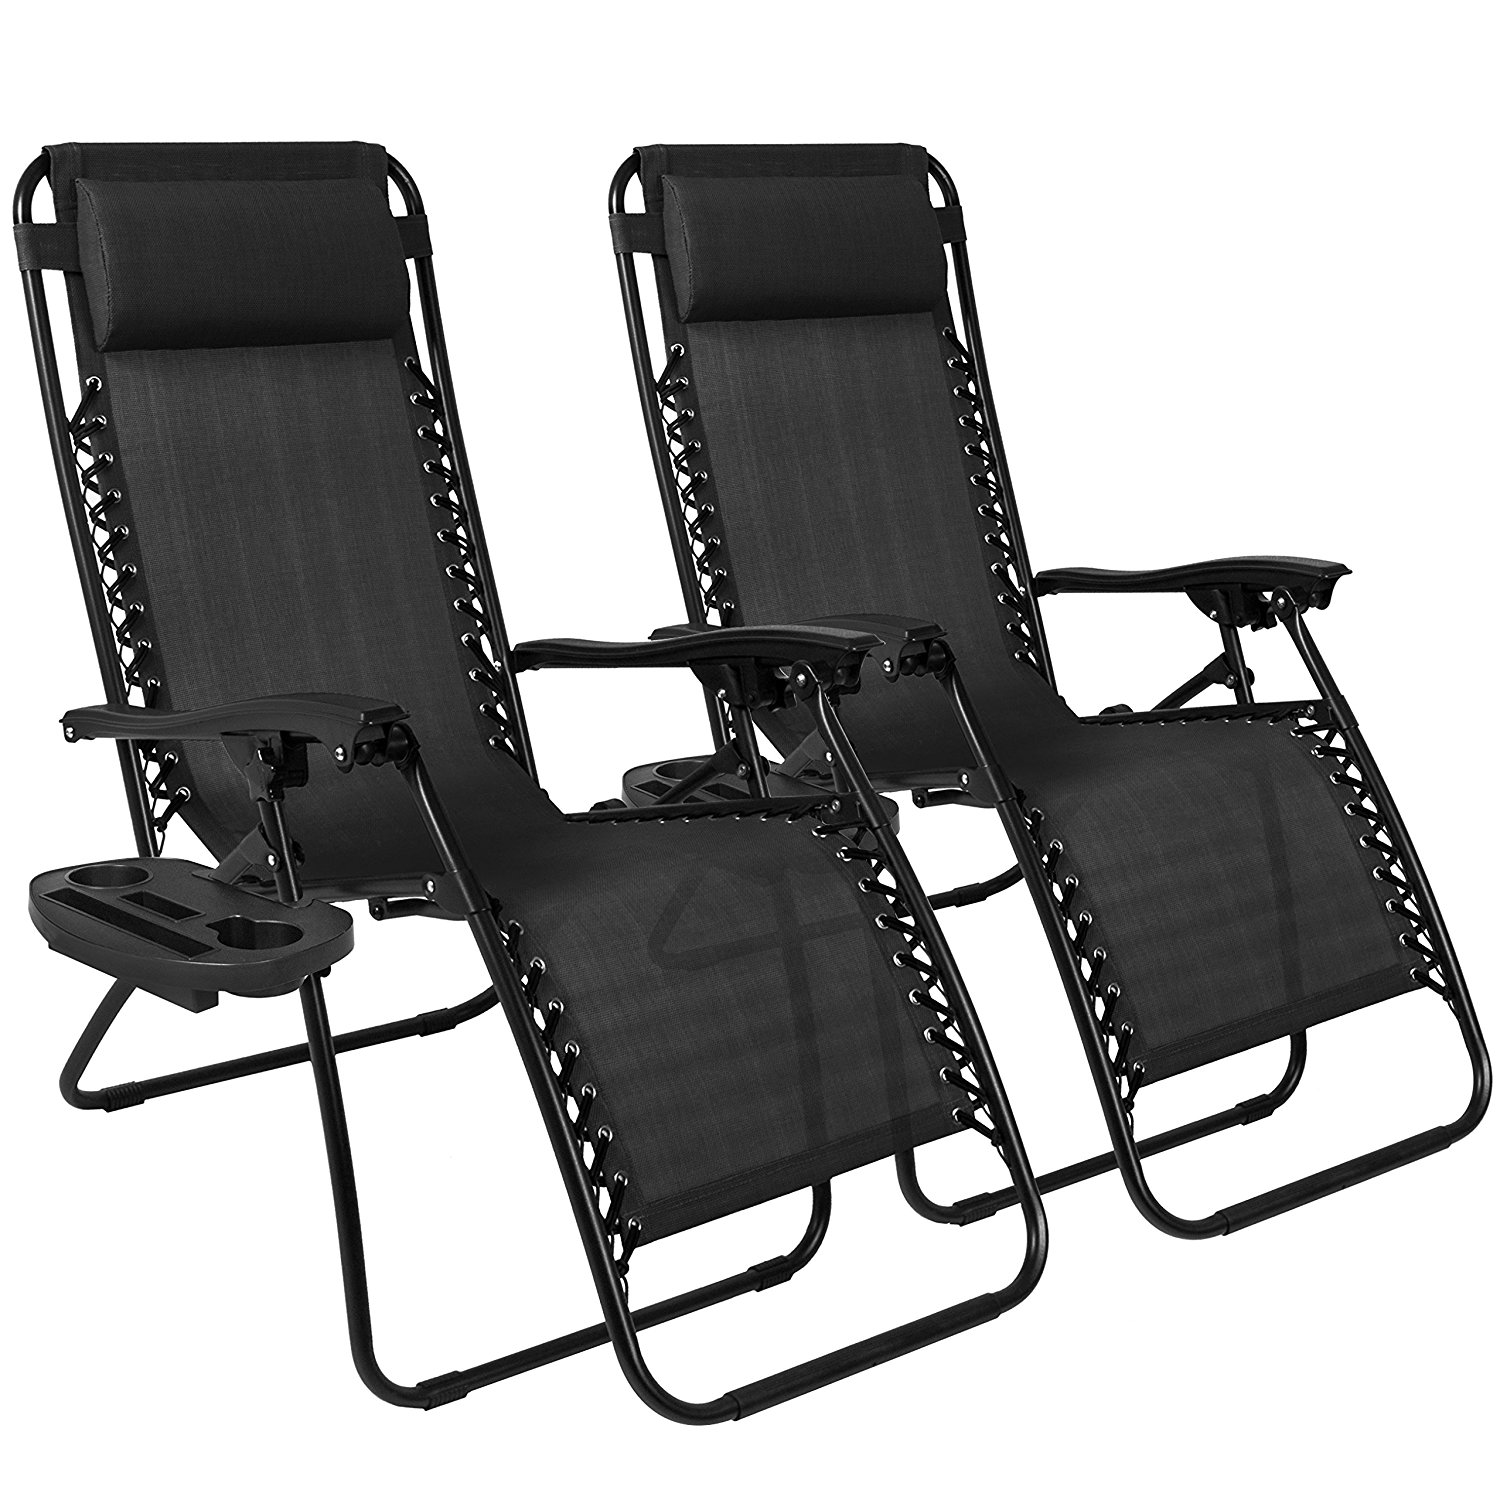 Gravity Lounge Chair New 2pc Zero Gravity Patio Lounge Chairs